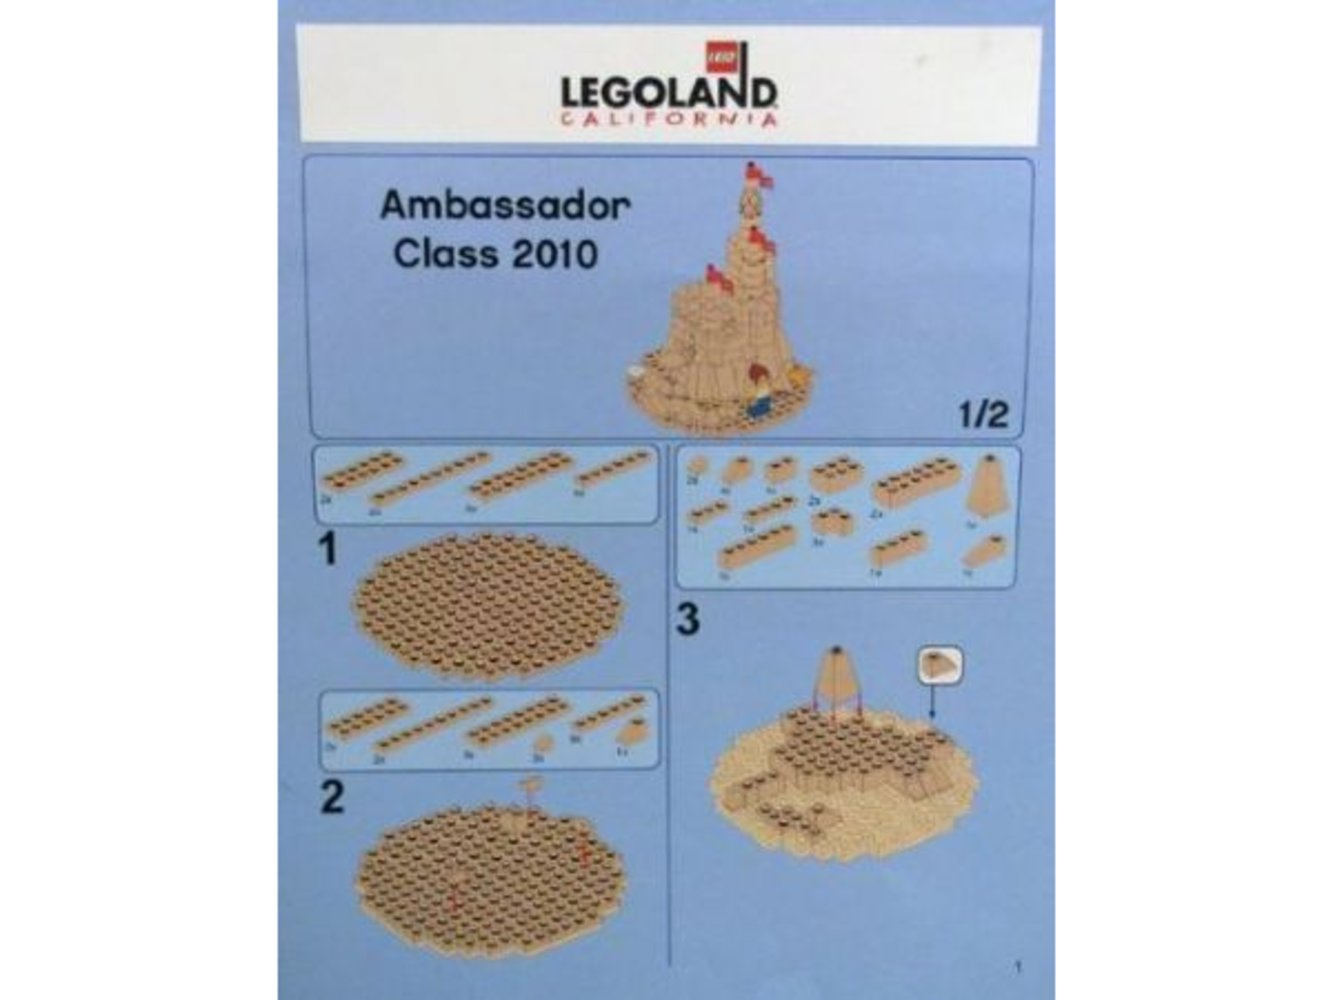 Sand Castle - Ambassador Class 2010 (LLCA Ambassador Pass Exclusive)